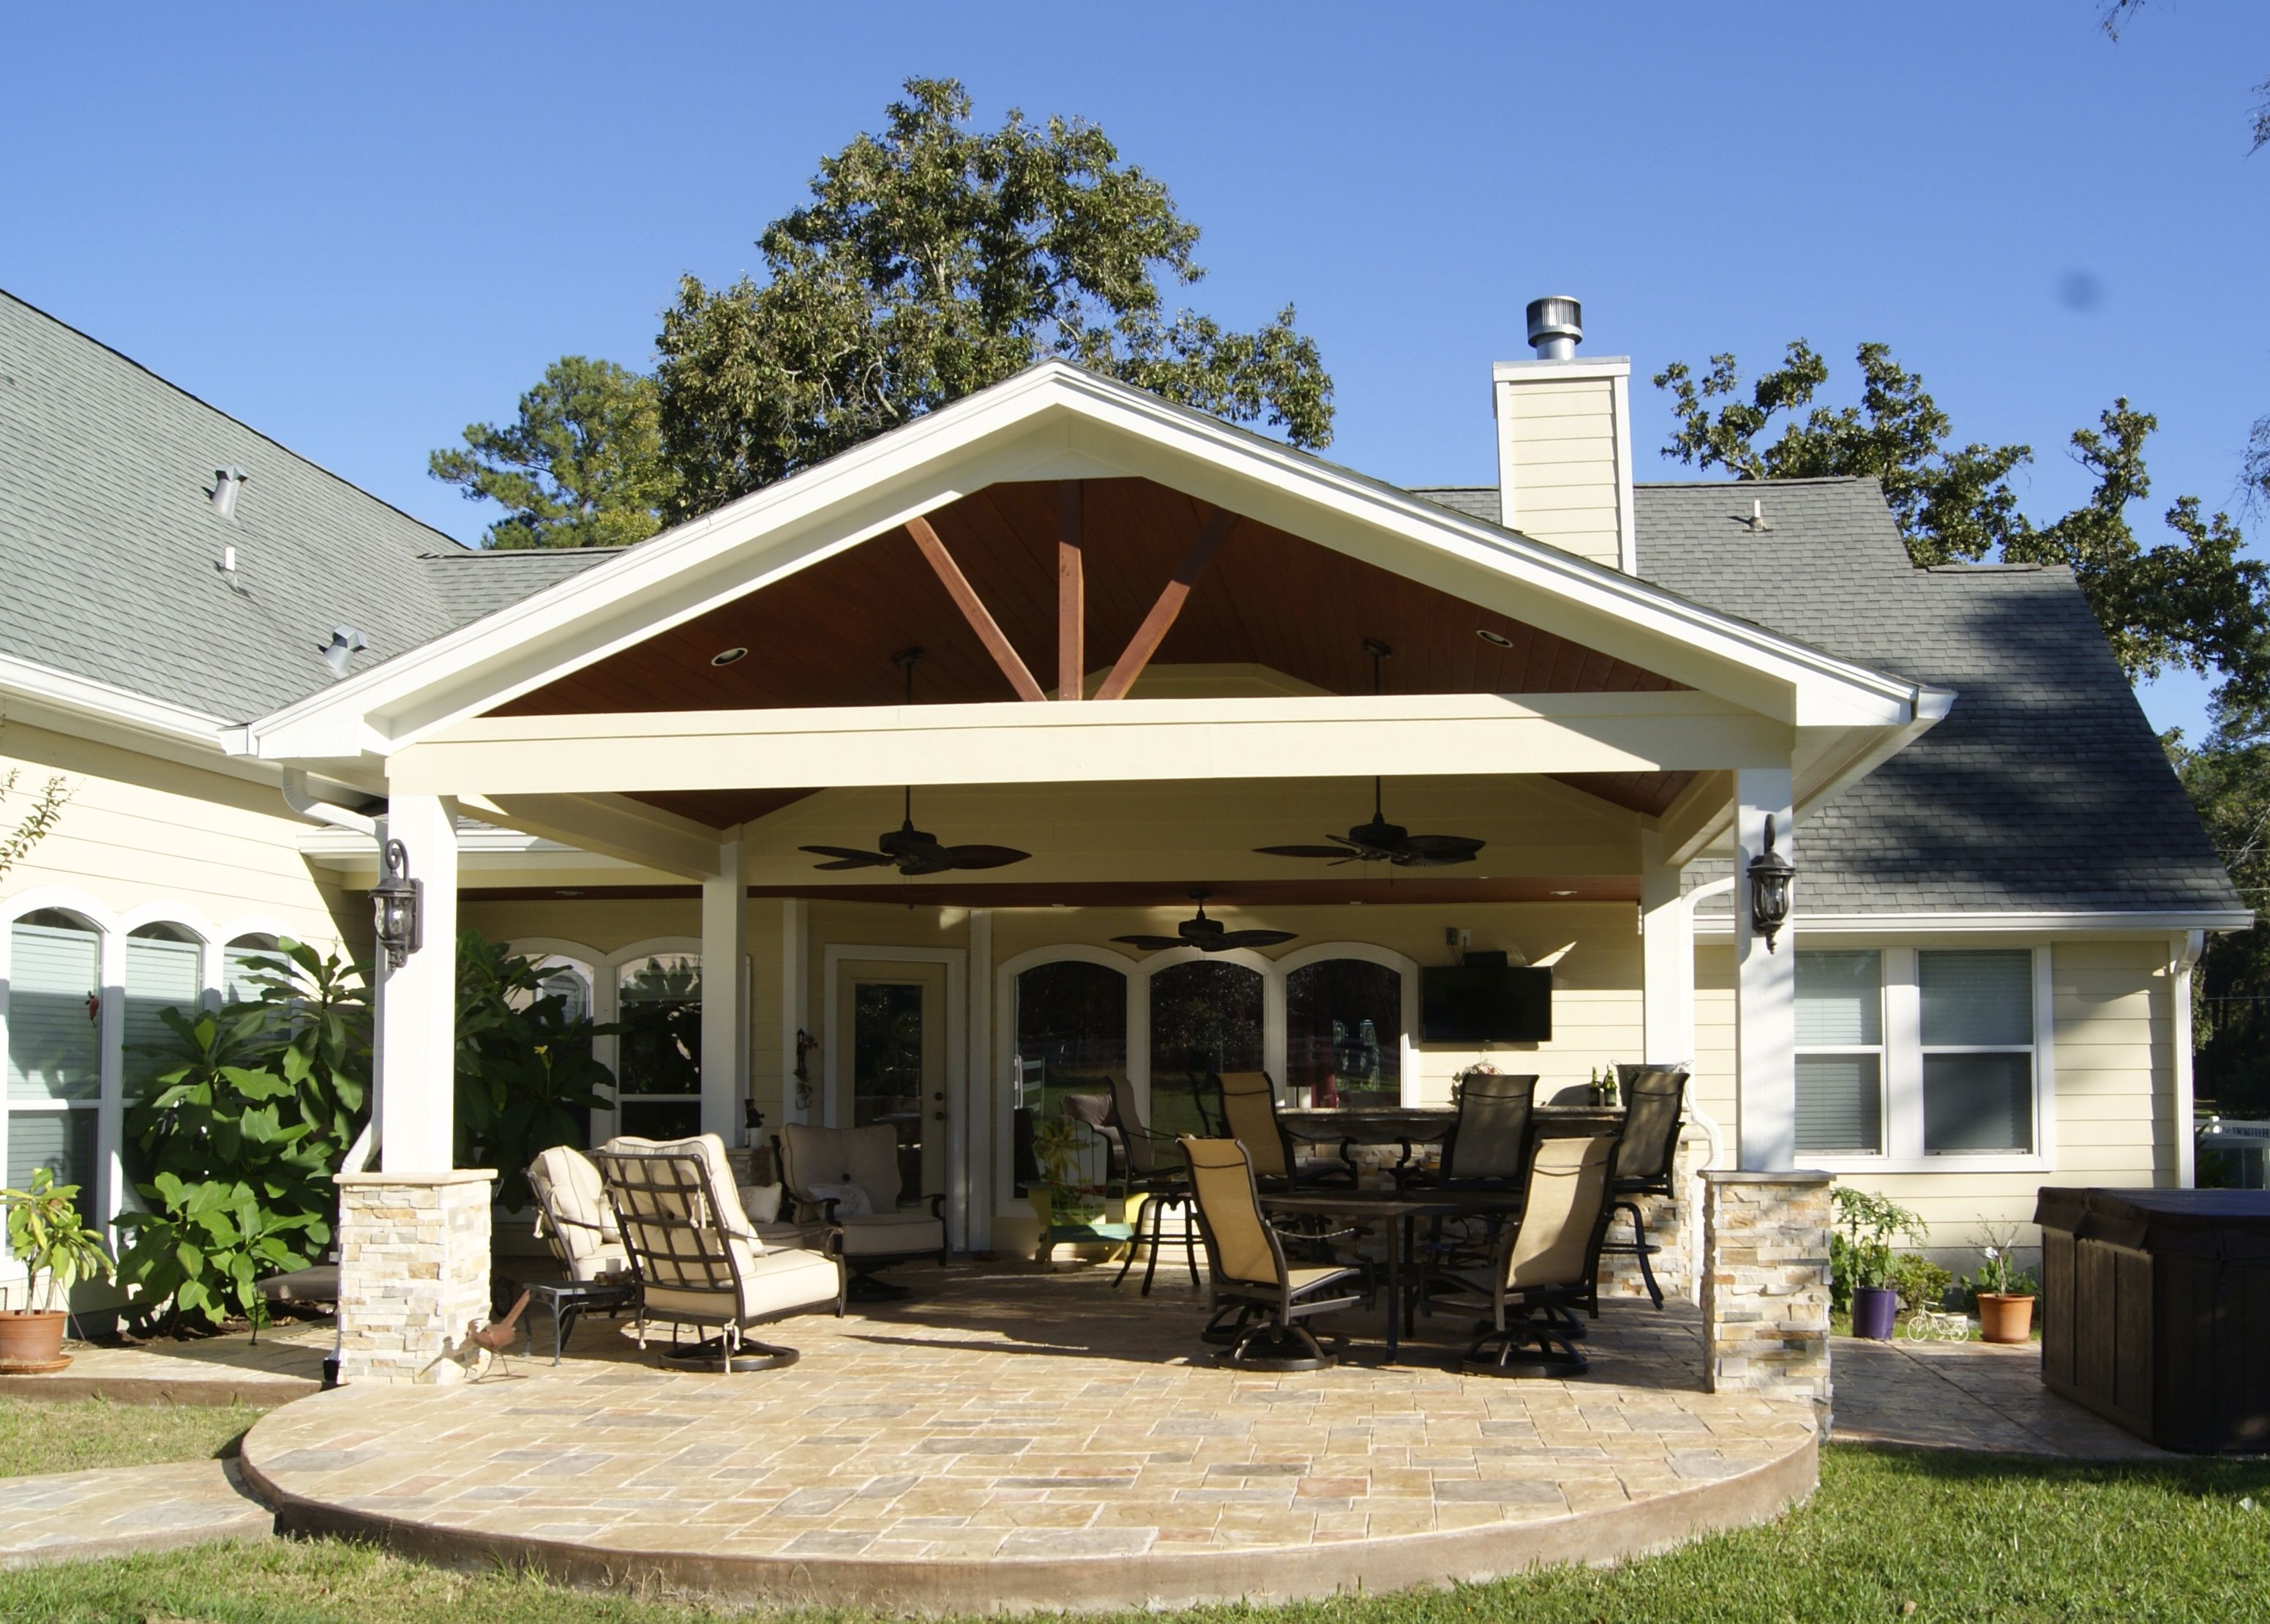 Patio Cover With Stamped Concrete   Magnolia, TX. Back Patio Remodel Idea.